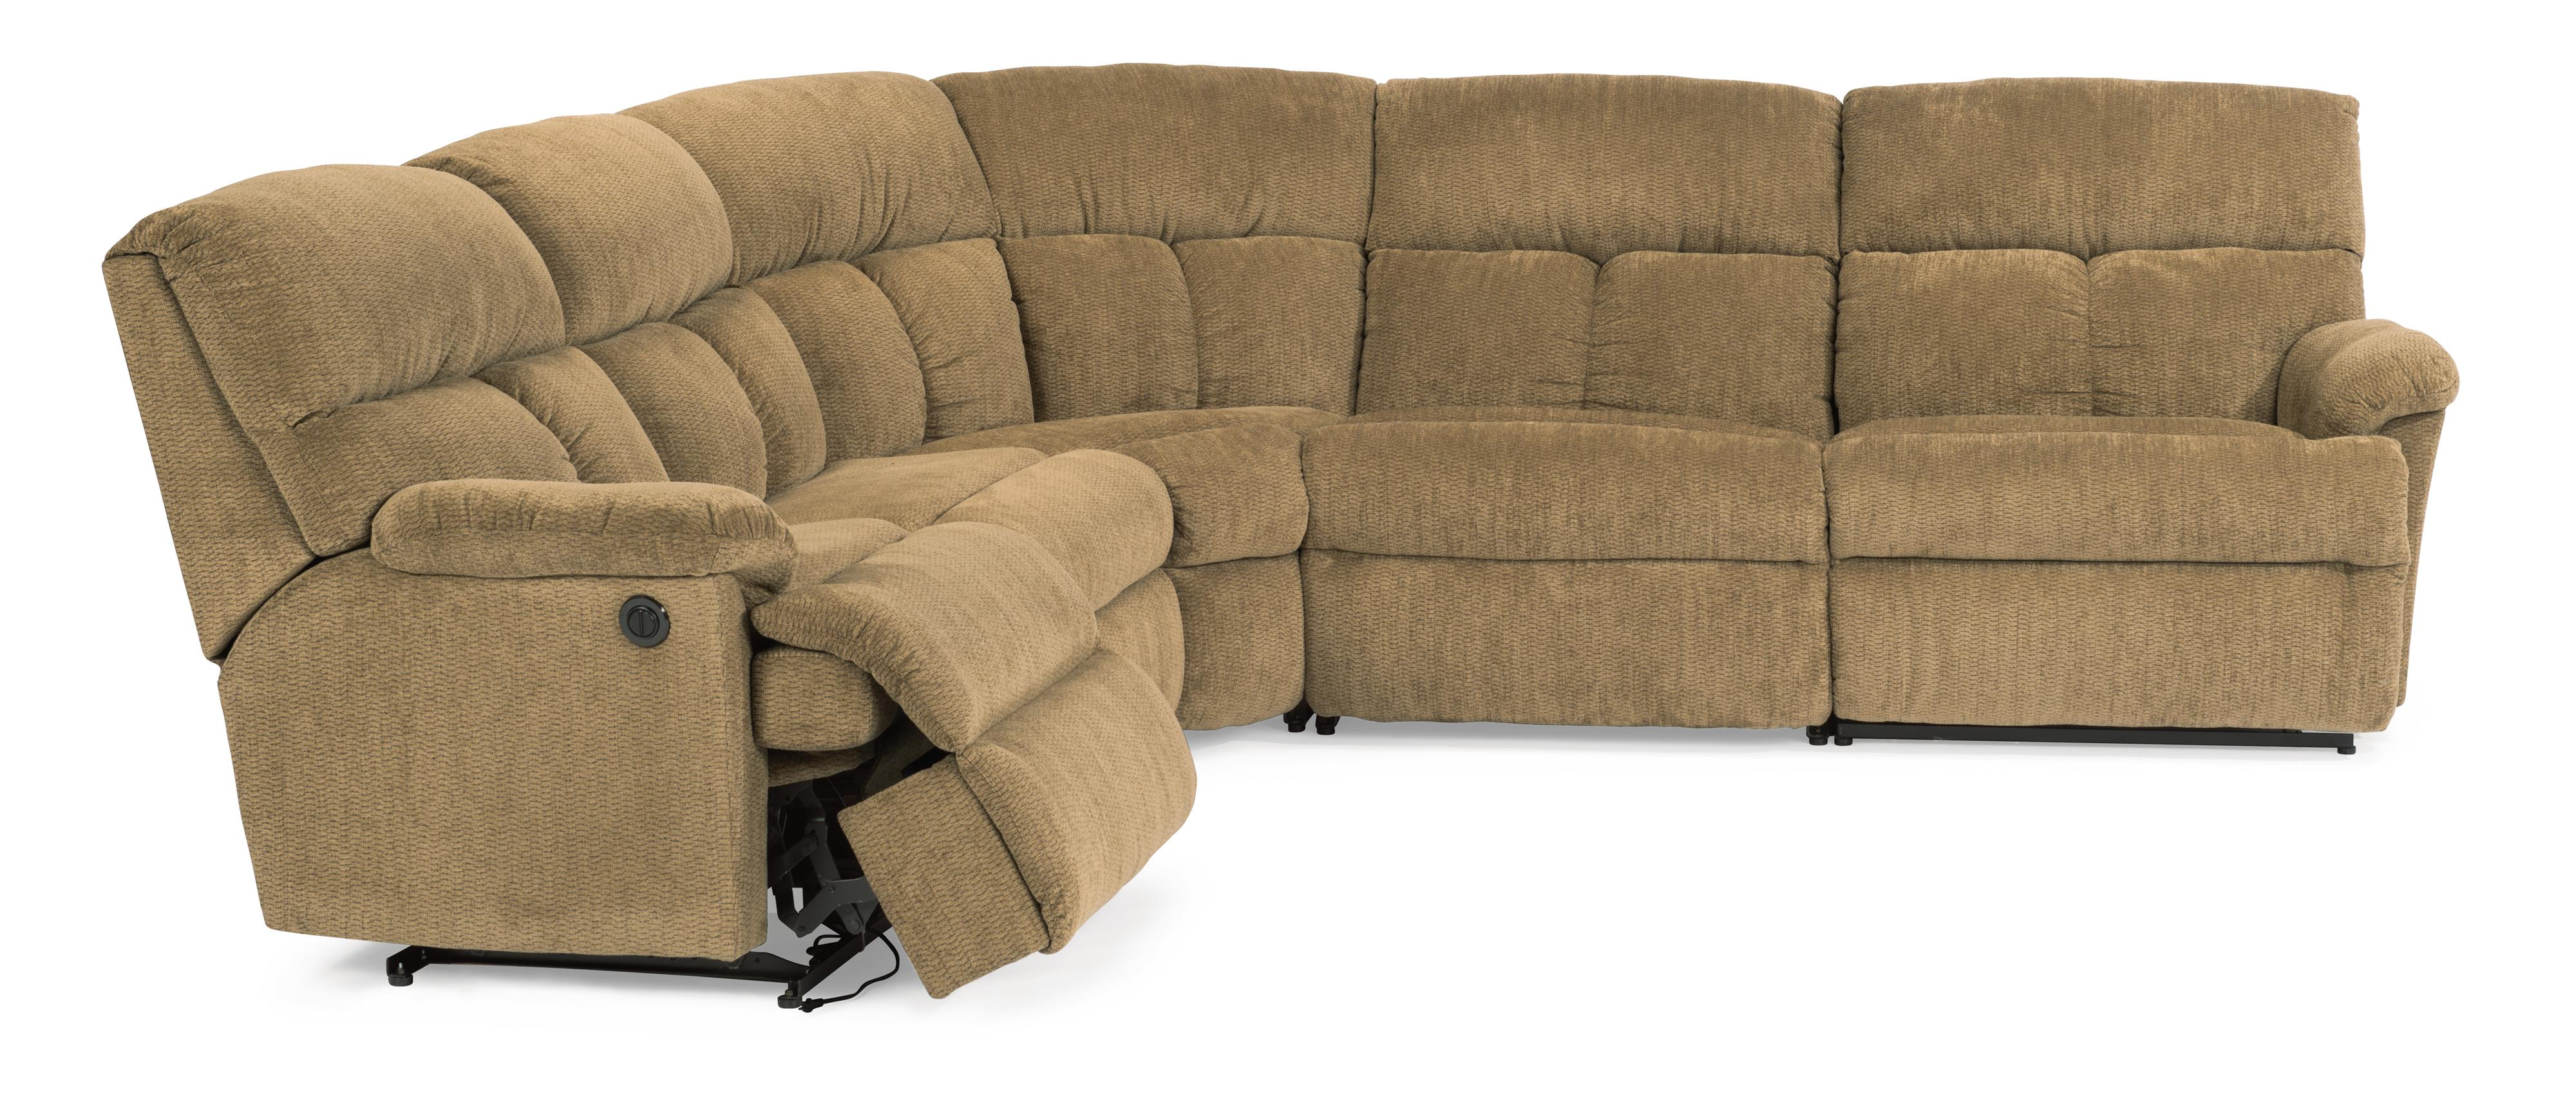 Flexsteel Triton Reclining Sofa Sectional AHFA Reclining